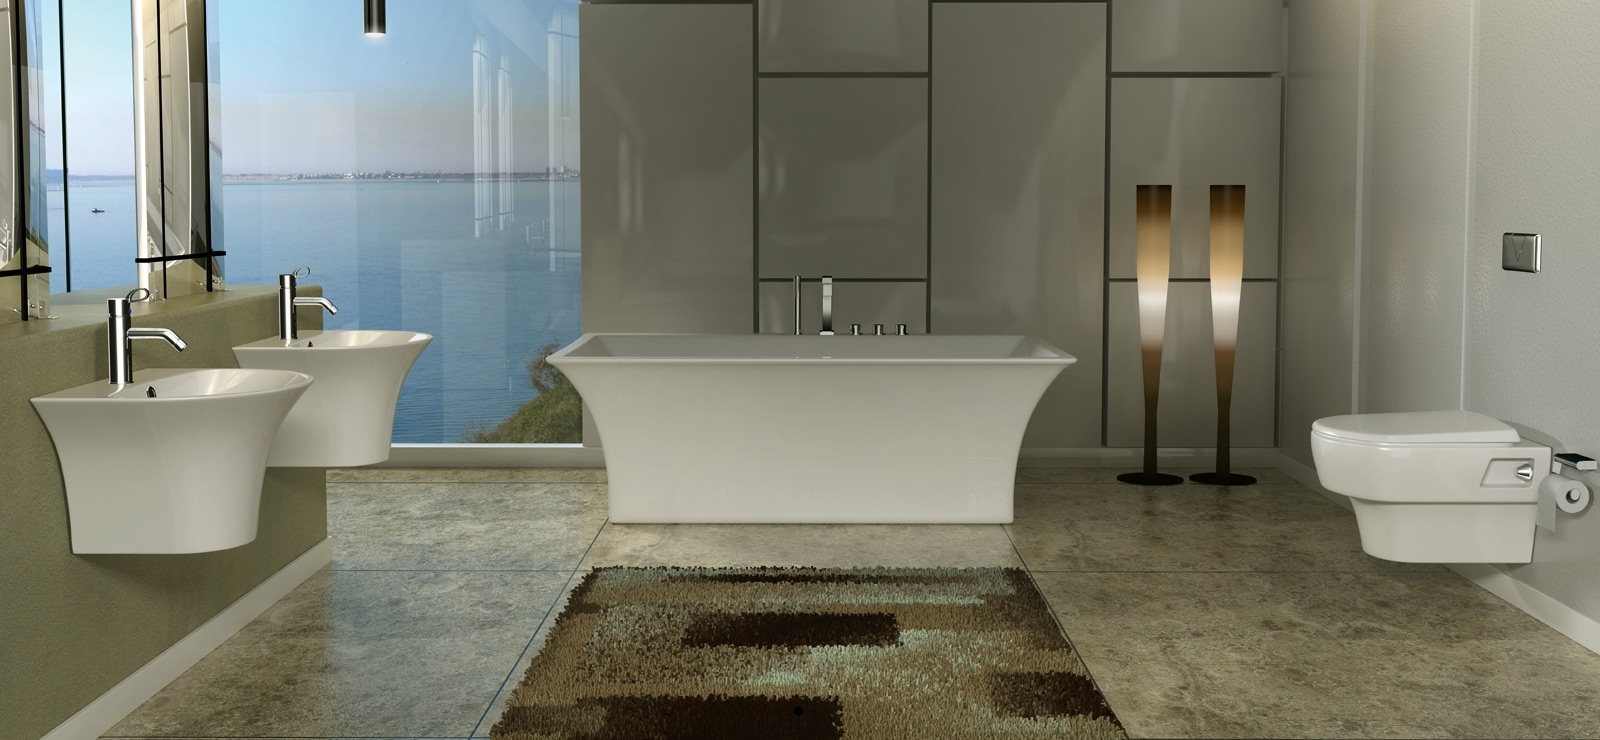 Hindware Premium Bathroom Collection | Hindwarehomes Hindware Bathroom Design